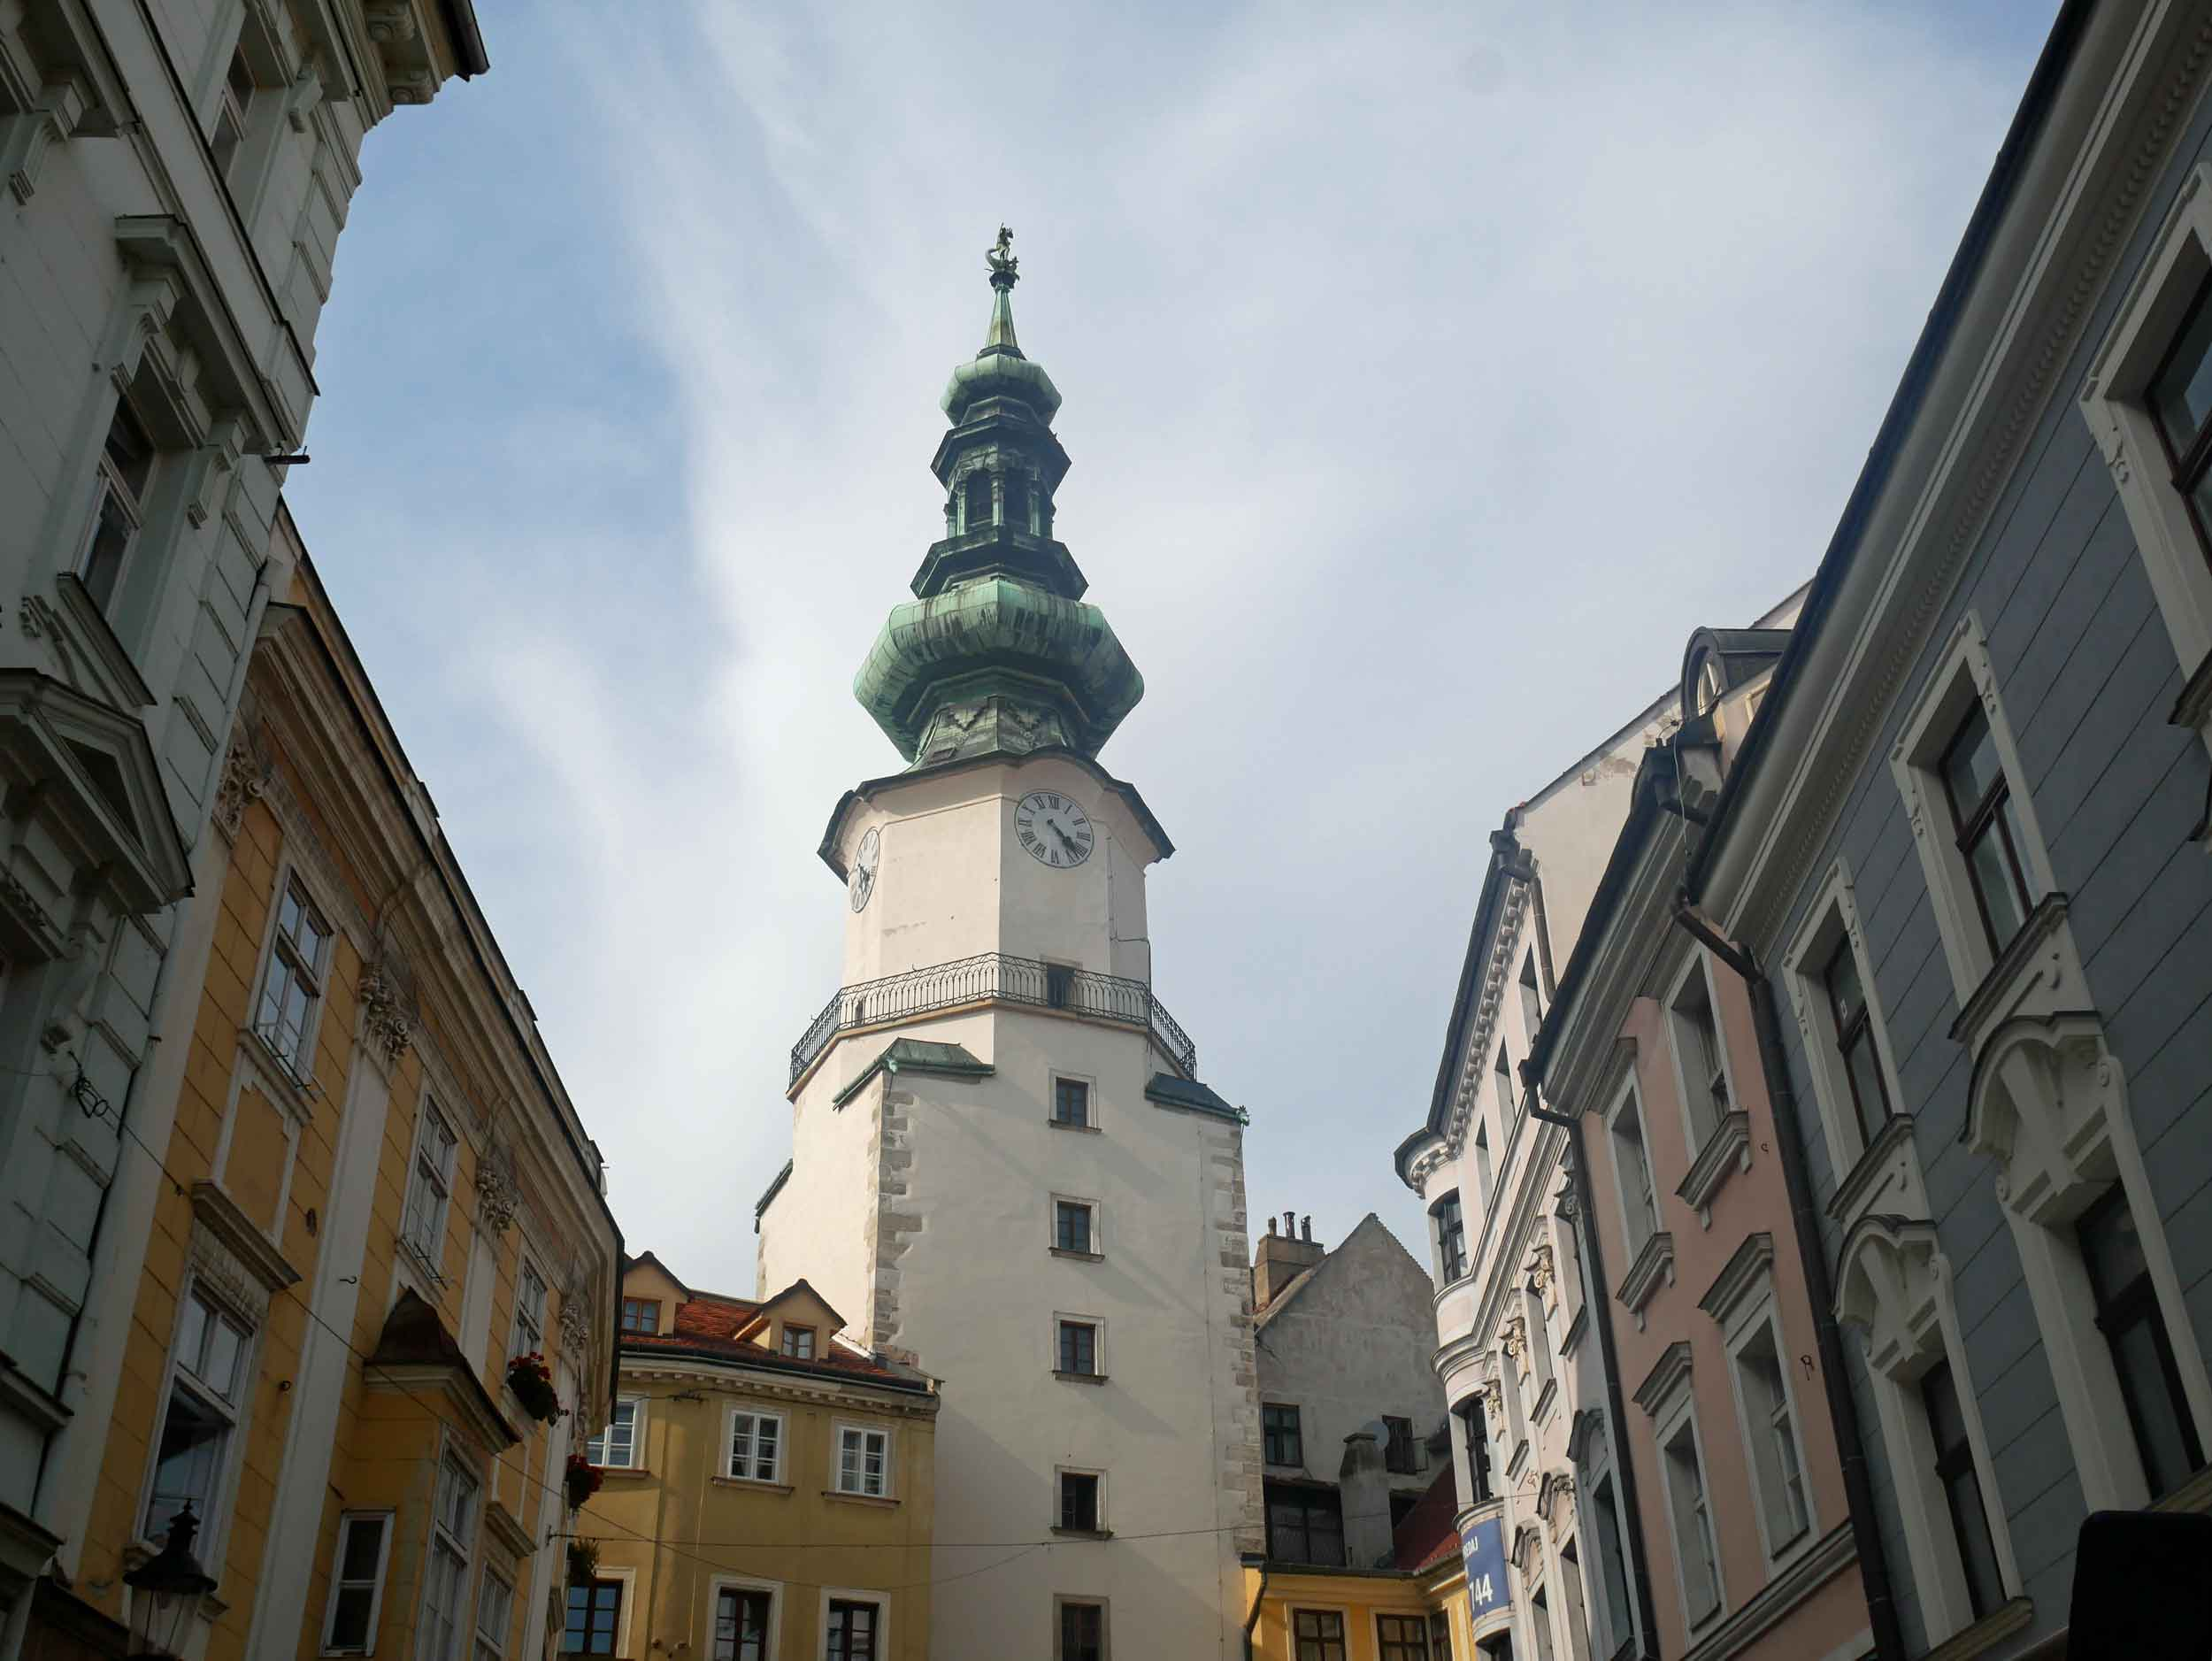 1) Looking up in the old town!